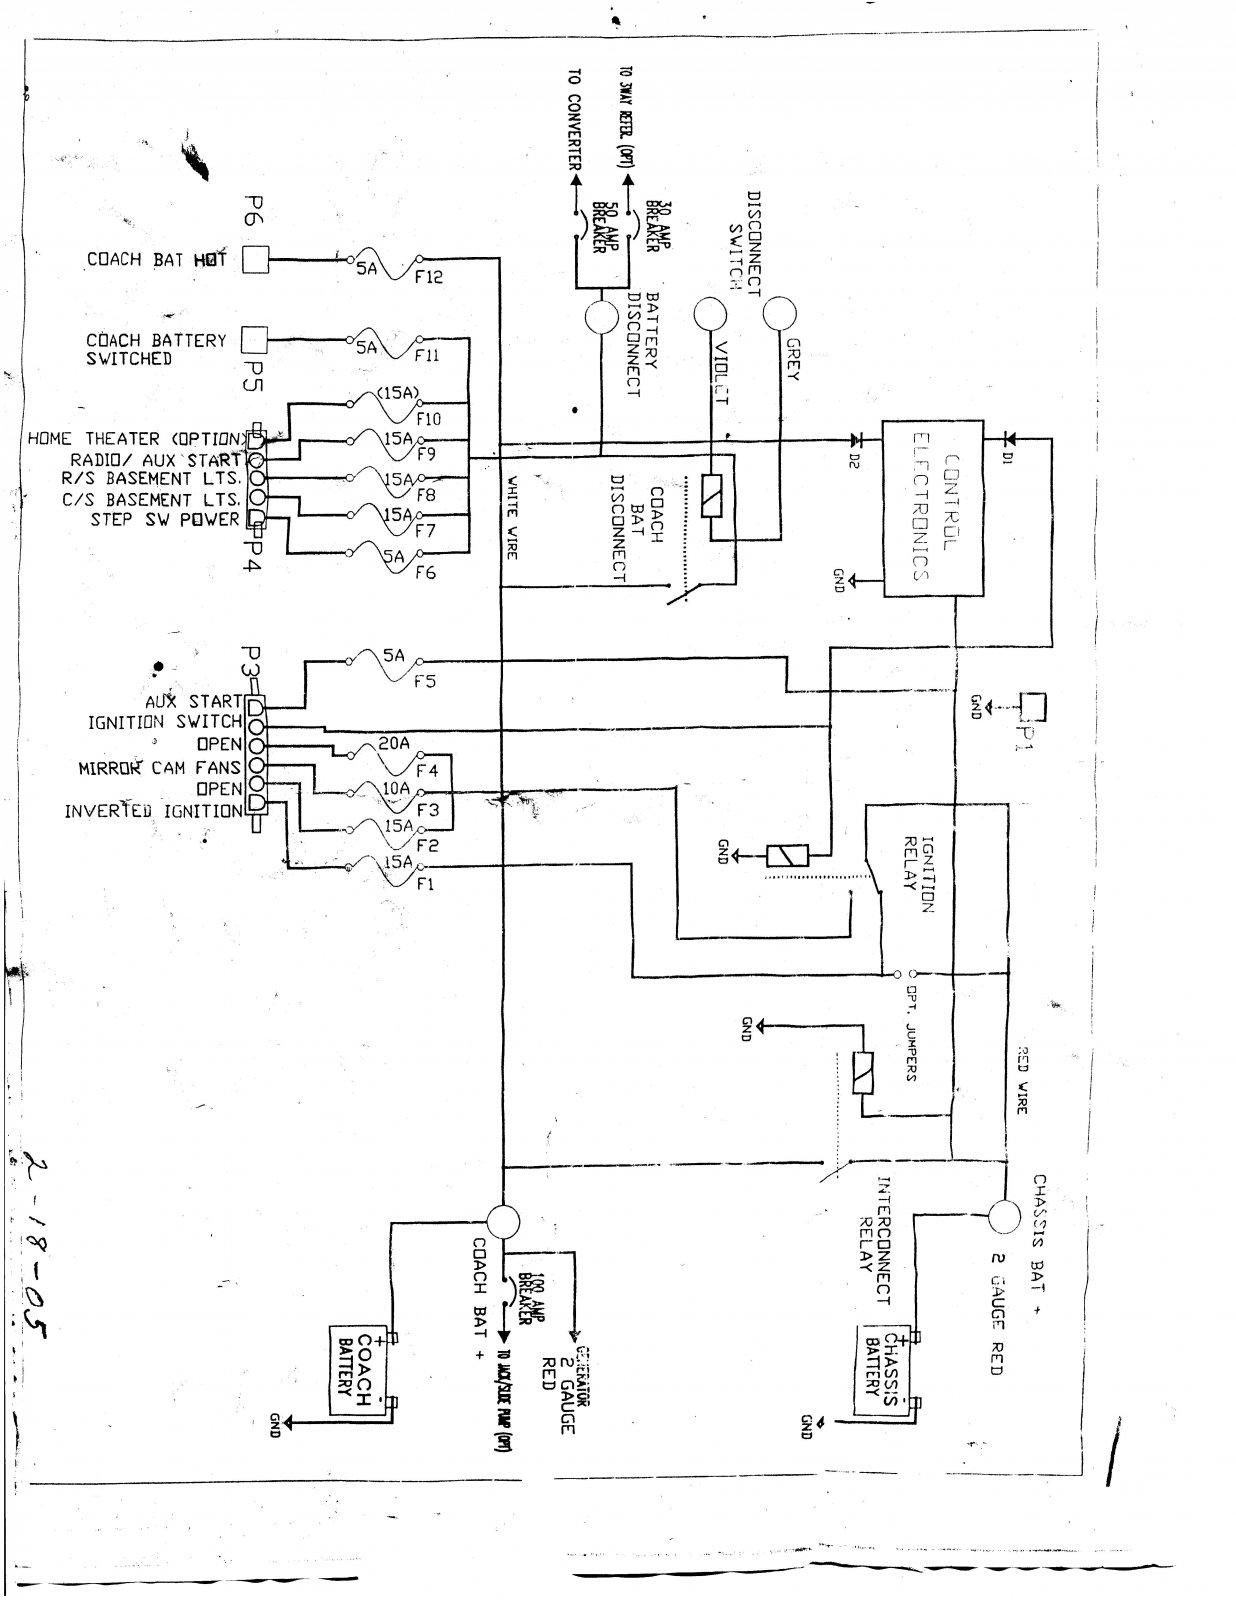 2000 Winnebago Wiring Diagram Winnebago Electrical